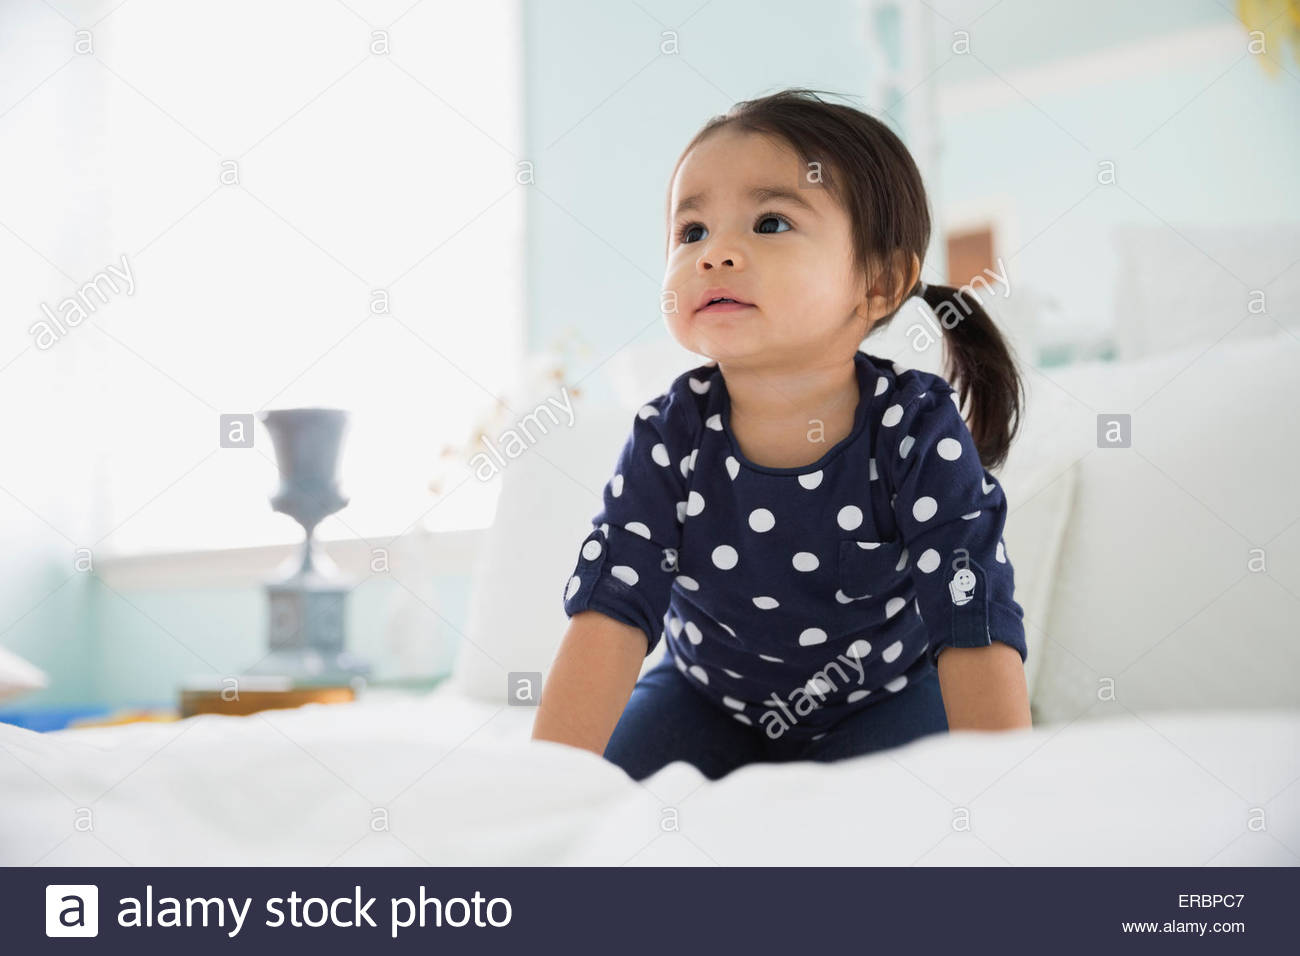 Curious brunette girl looking up on bed - Stock Image